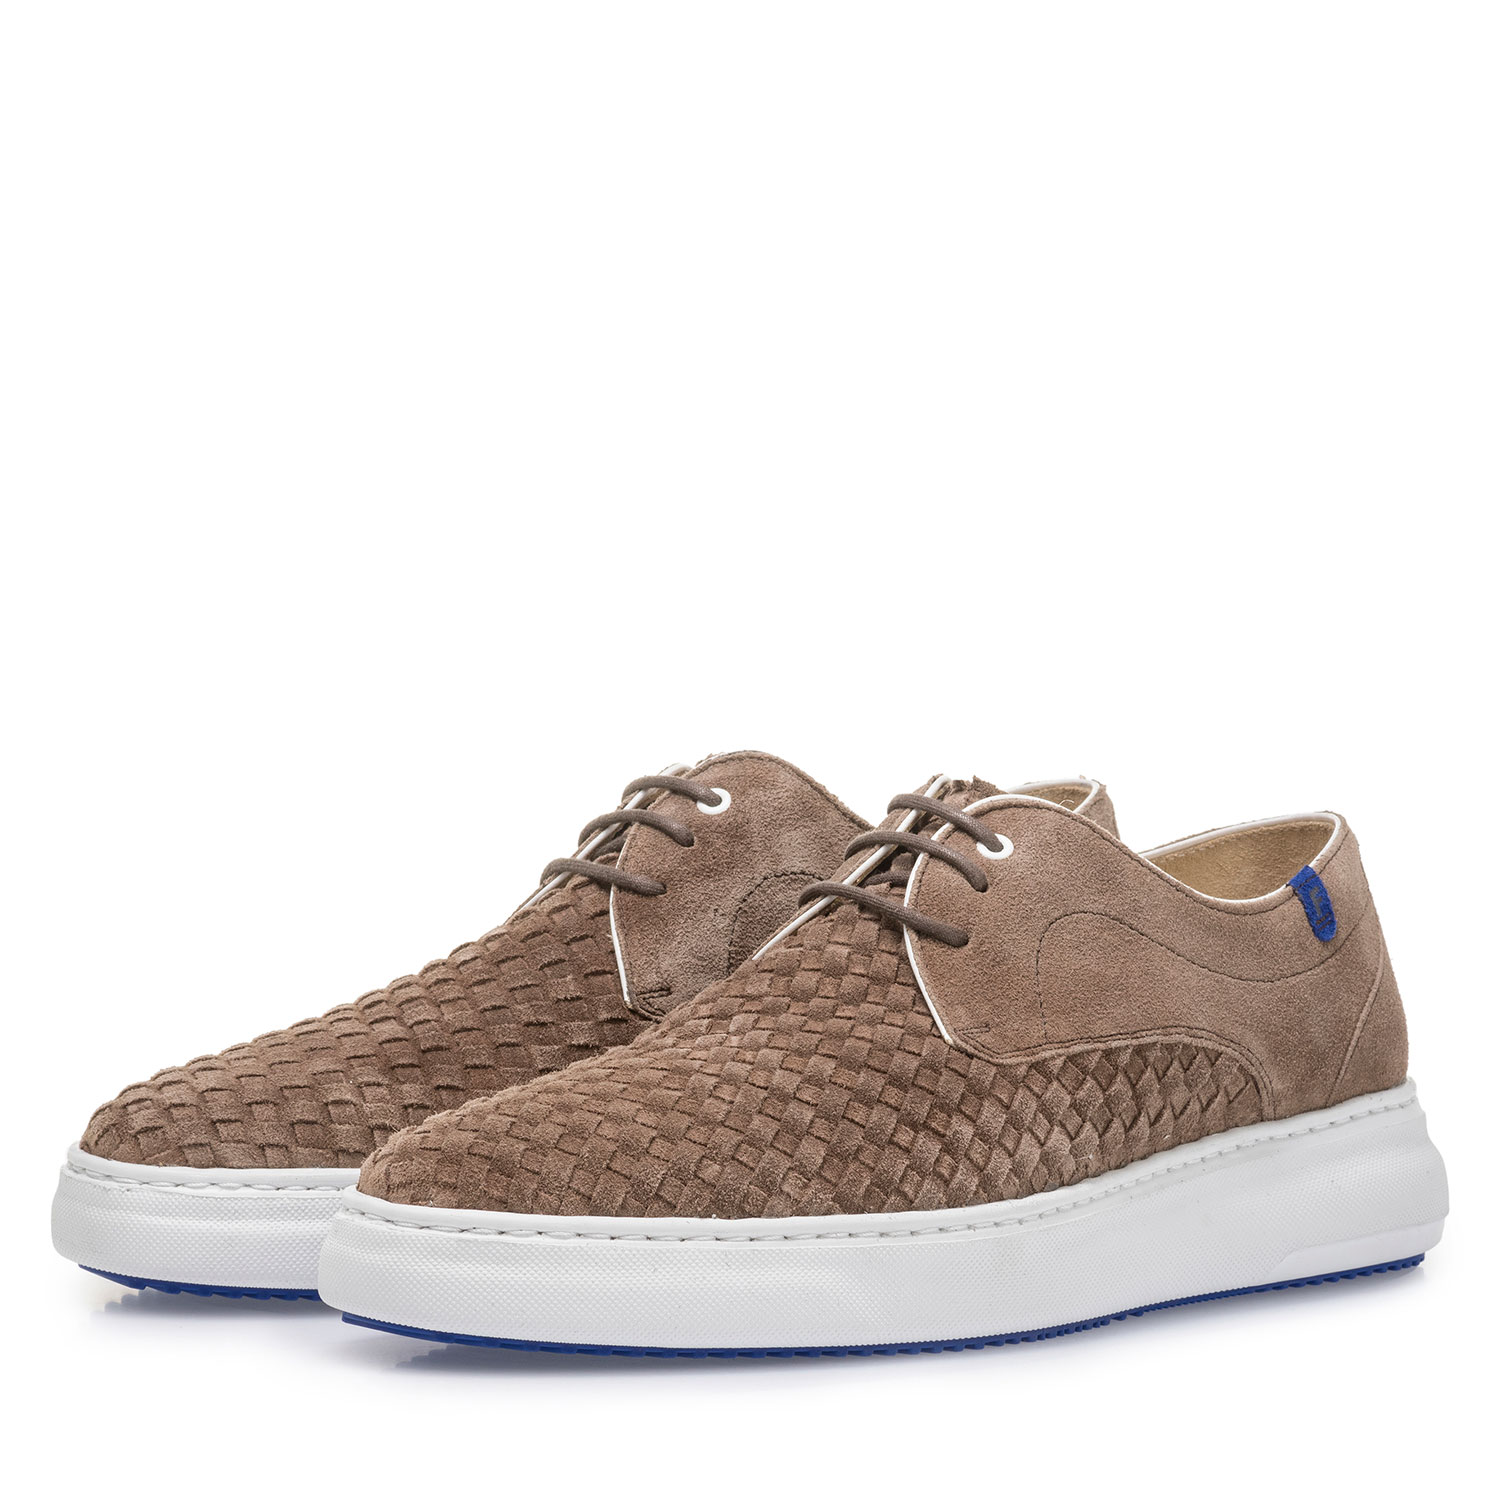 18401/01 - Taupe-coloured lace shoe with braided suede leather